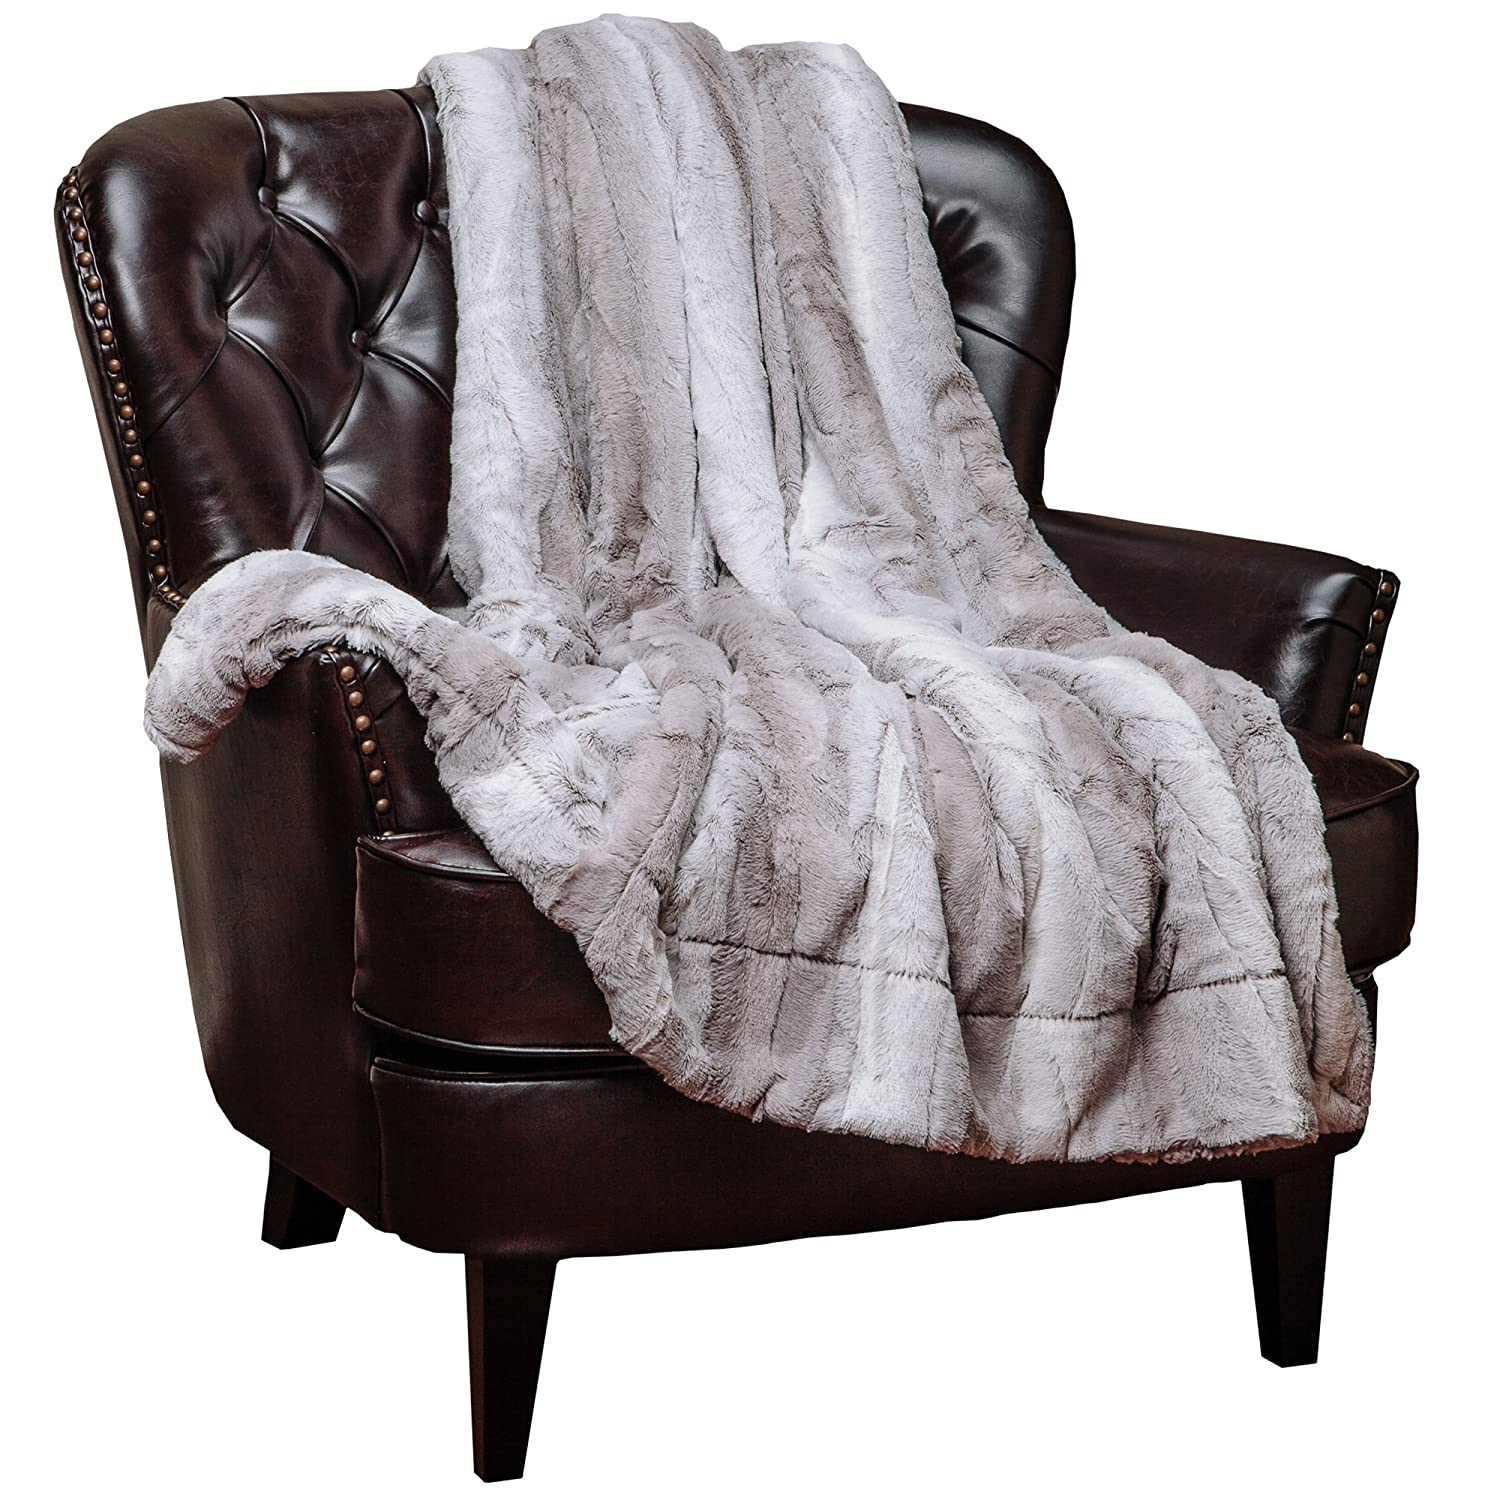 Chanasya Super Soft Fuzzy Fur Elegant Throw Blanket | Faux Fur Falling Leaf Pattern with Fluffy Plush Sherpa Cozy Warm Grey Microfiber Blanket for Bed Couch Living Bed Room - Grey and White